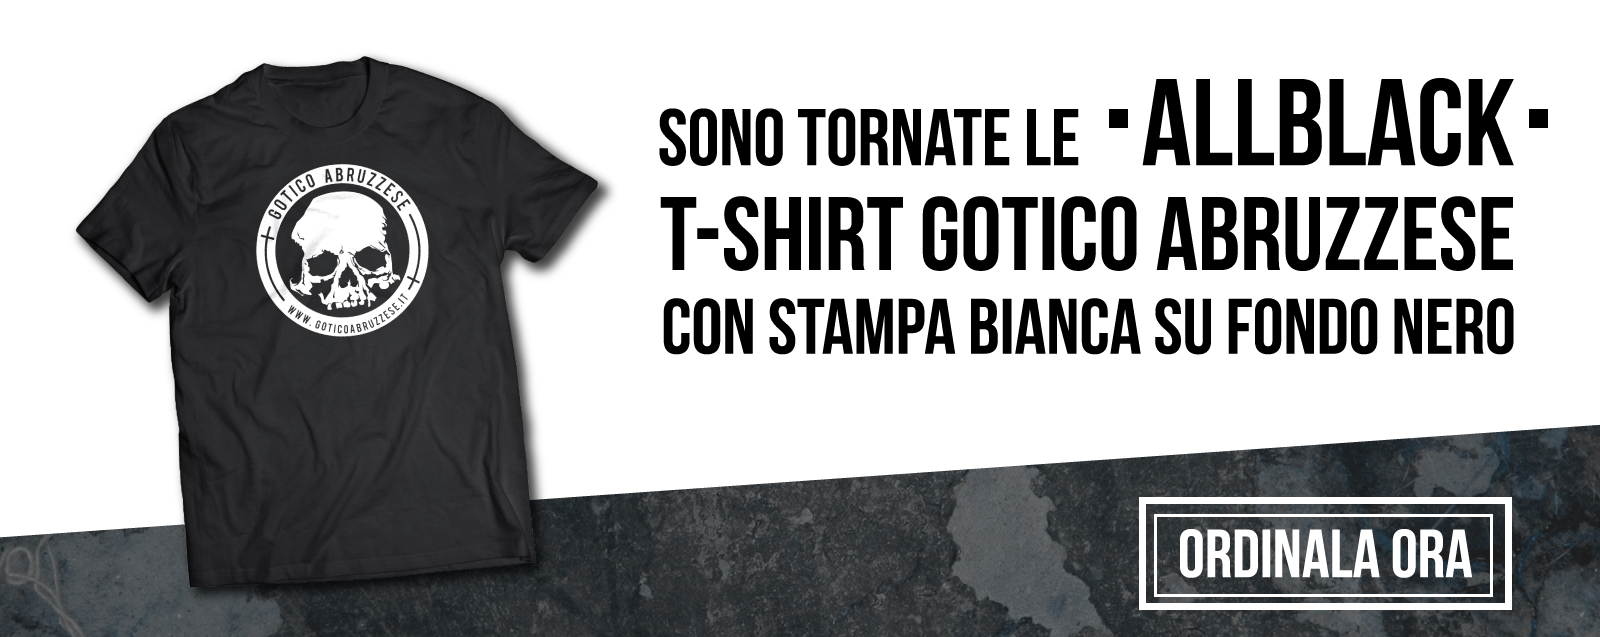 Gotico Abruzzese all black